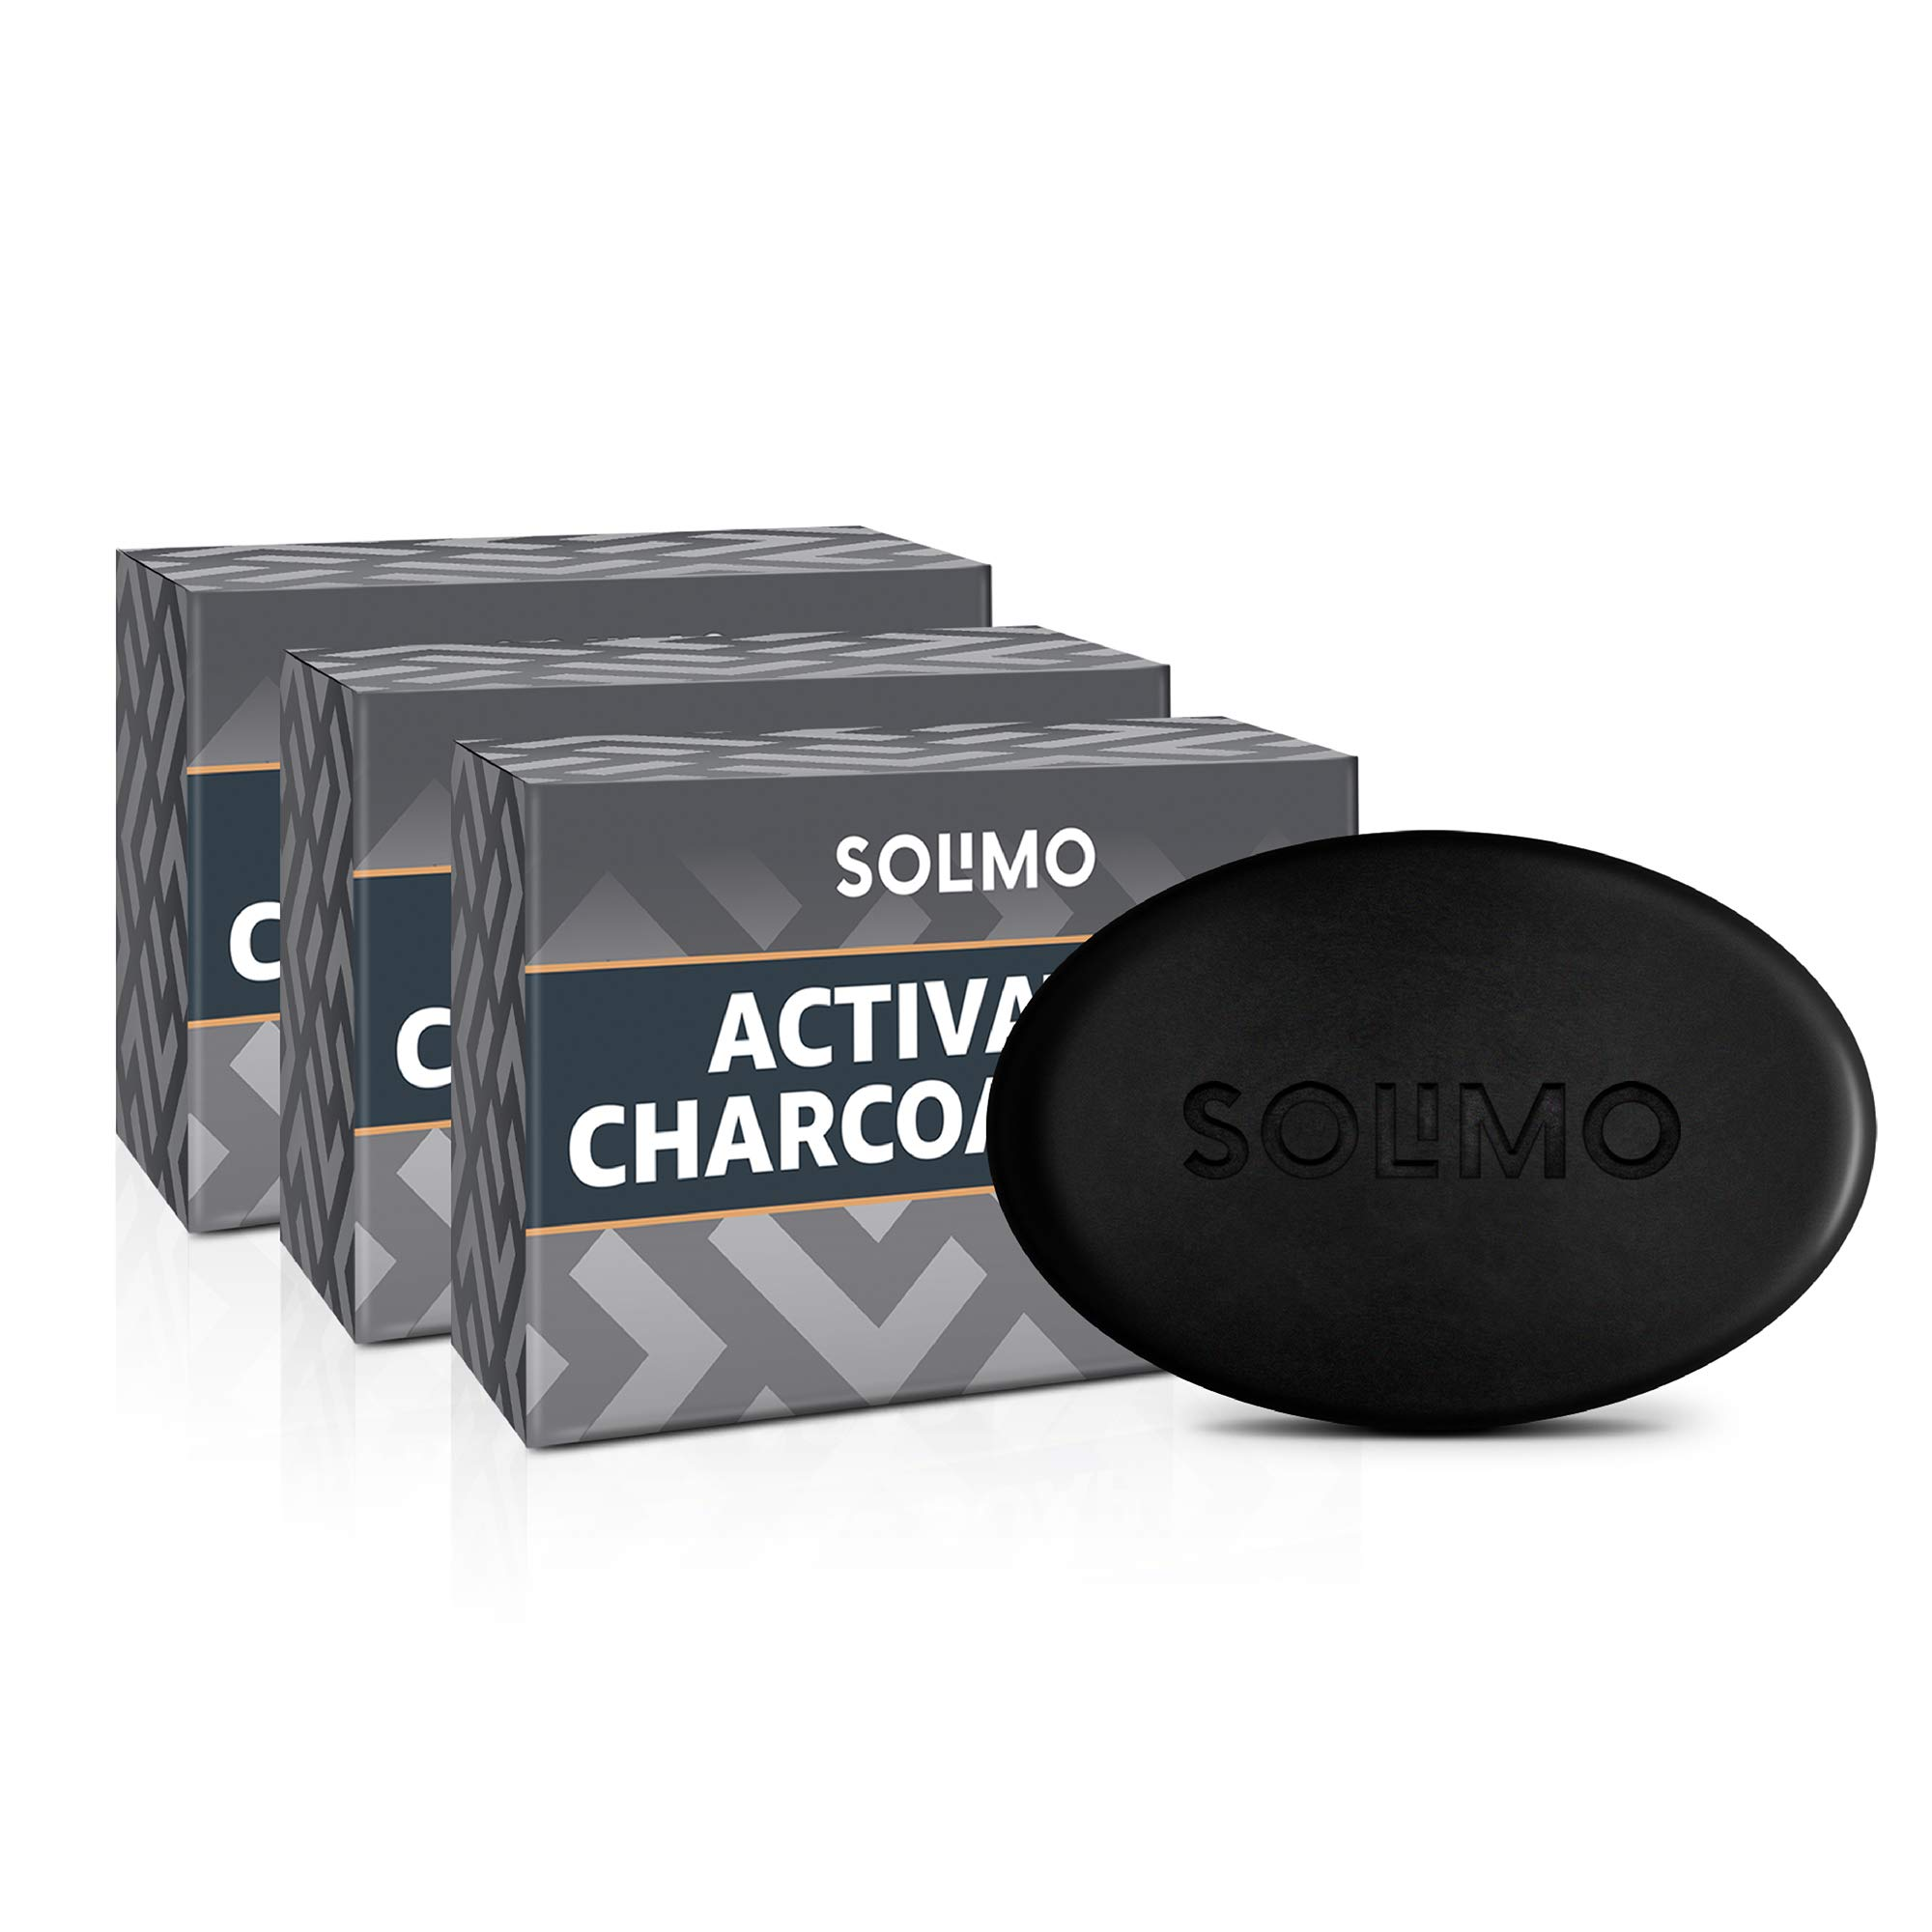 Amazon Brand - Solimo Activated Charcoal Soap (Pack of 3, 375g) (B07W9955XS) Amazon Price History, Amazon Price Tracker